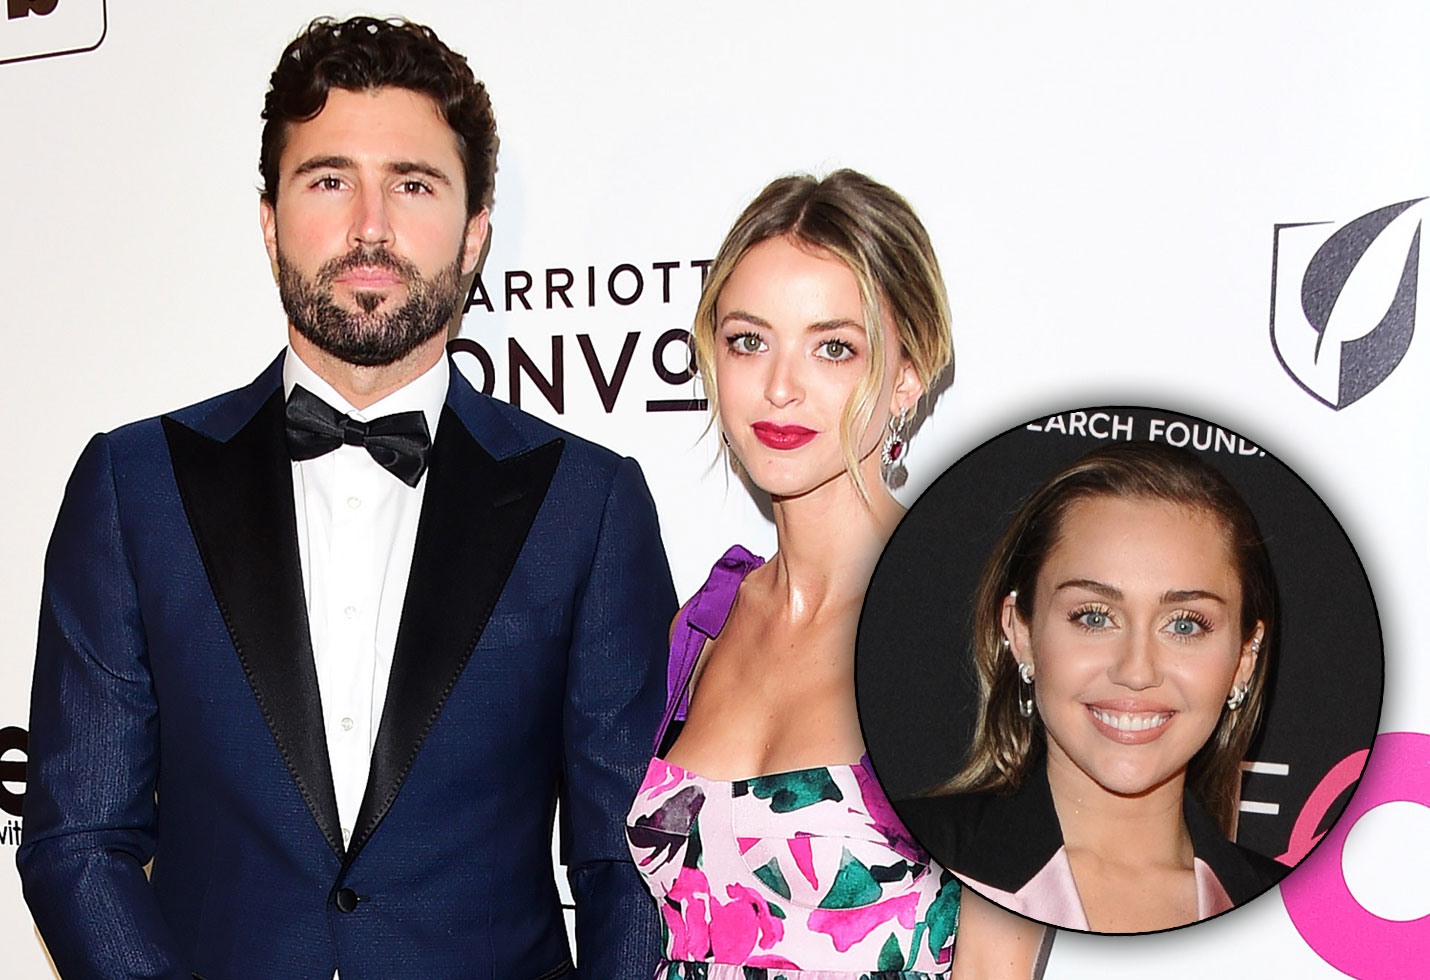 Miley Cyrus Slams Brody Jenner After Making Out With His Ex-Wife